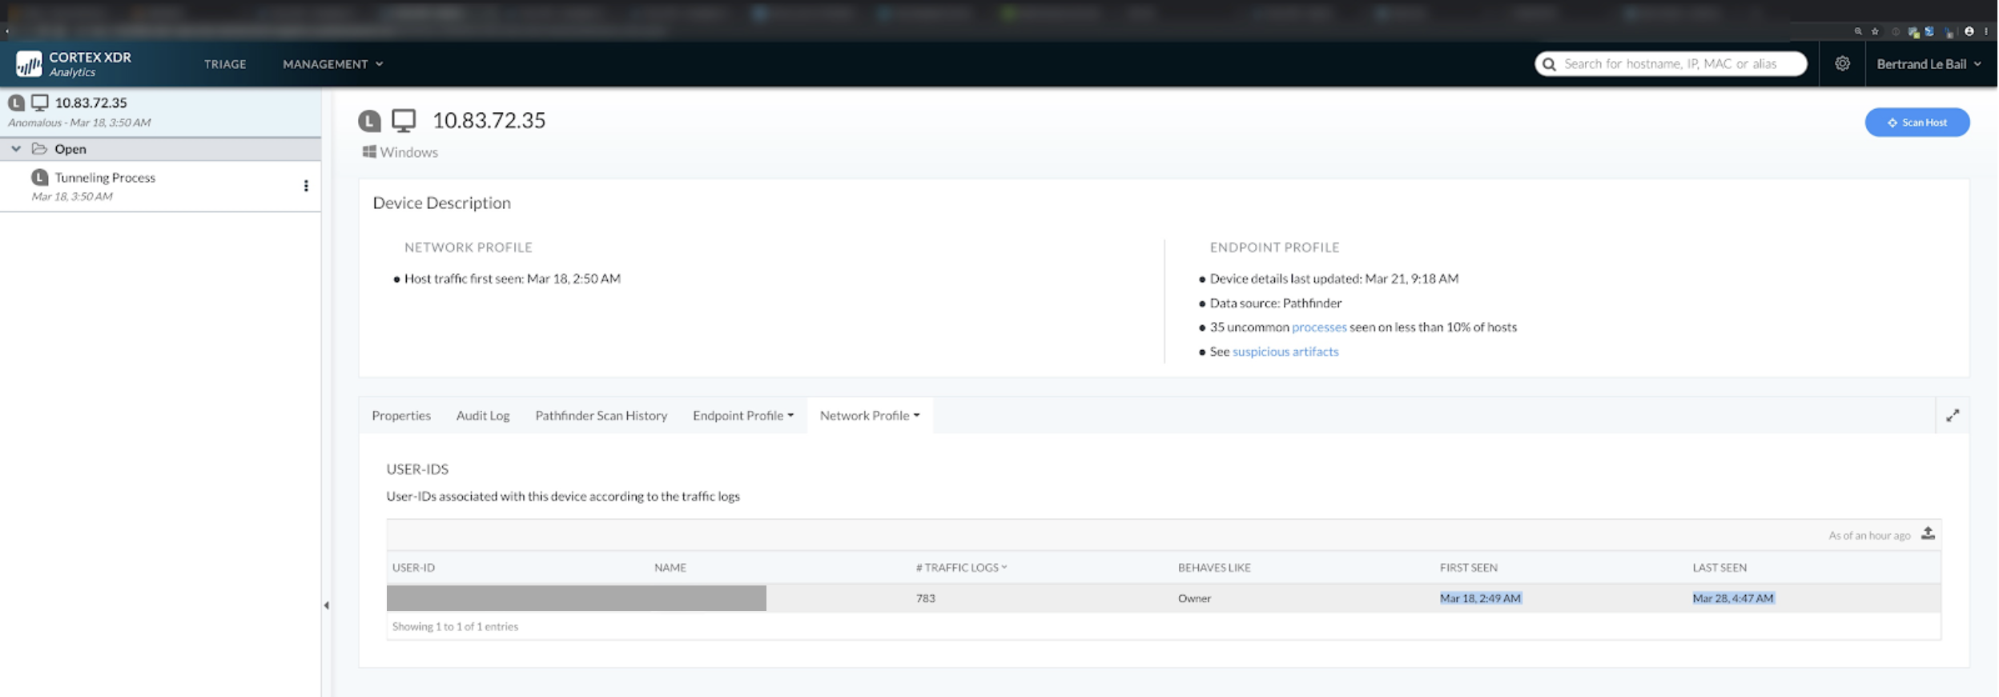 This screenshot shows Cortex XDR by Palo Alto Networks